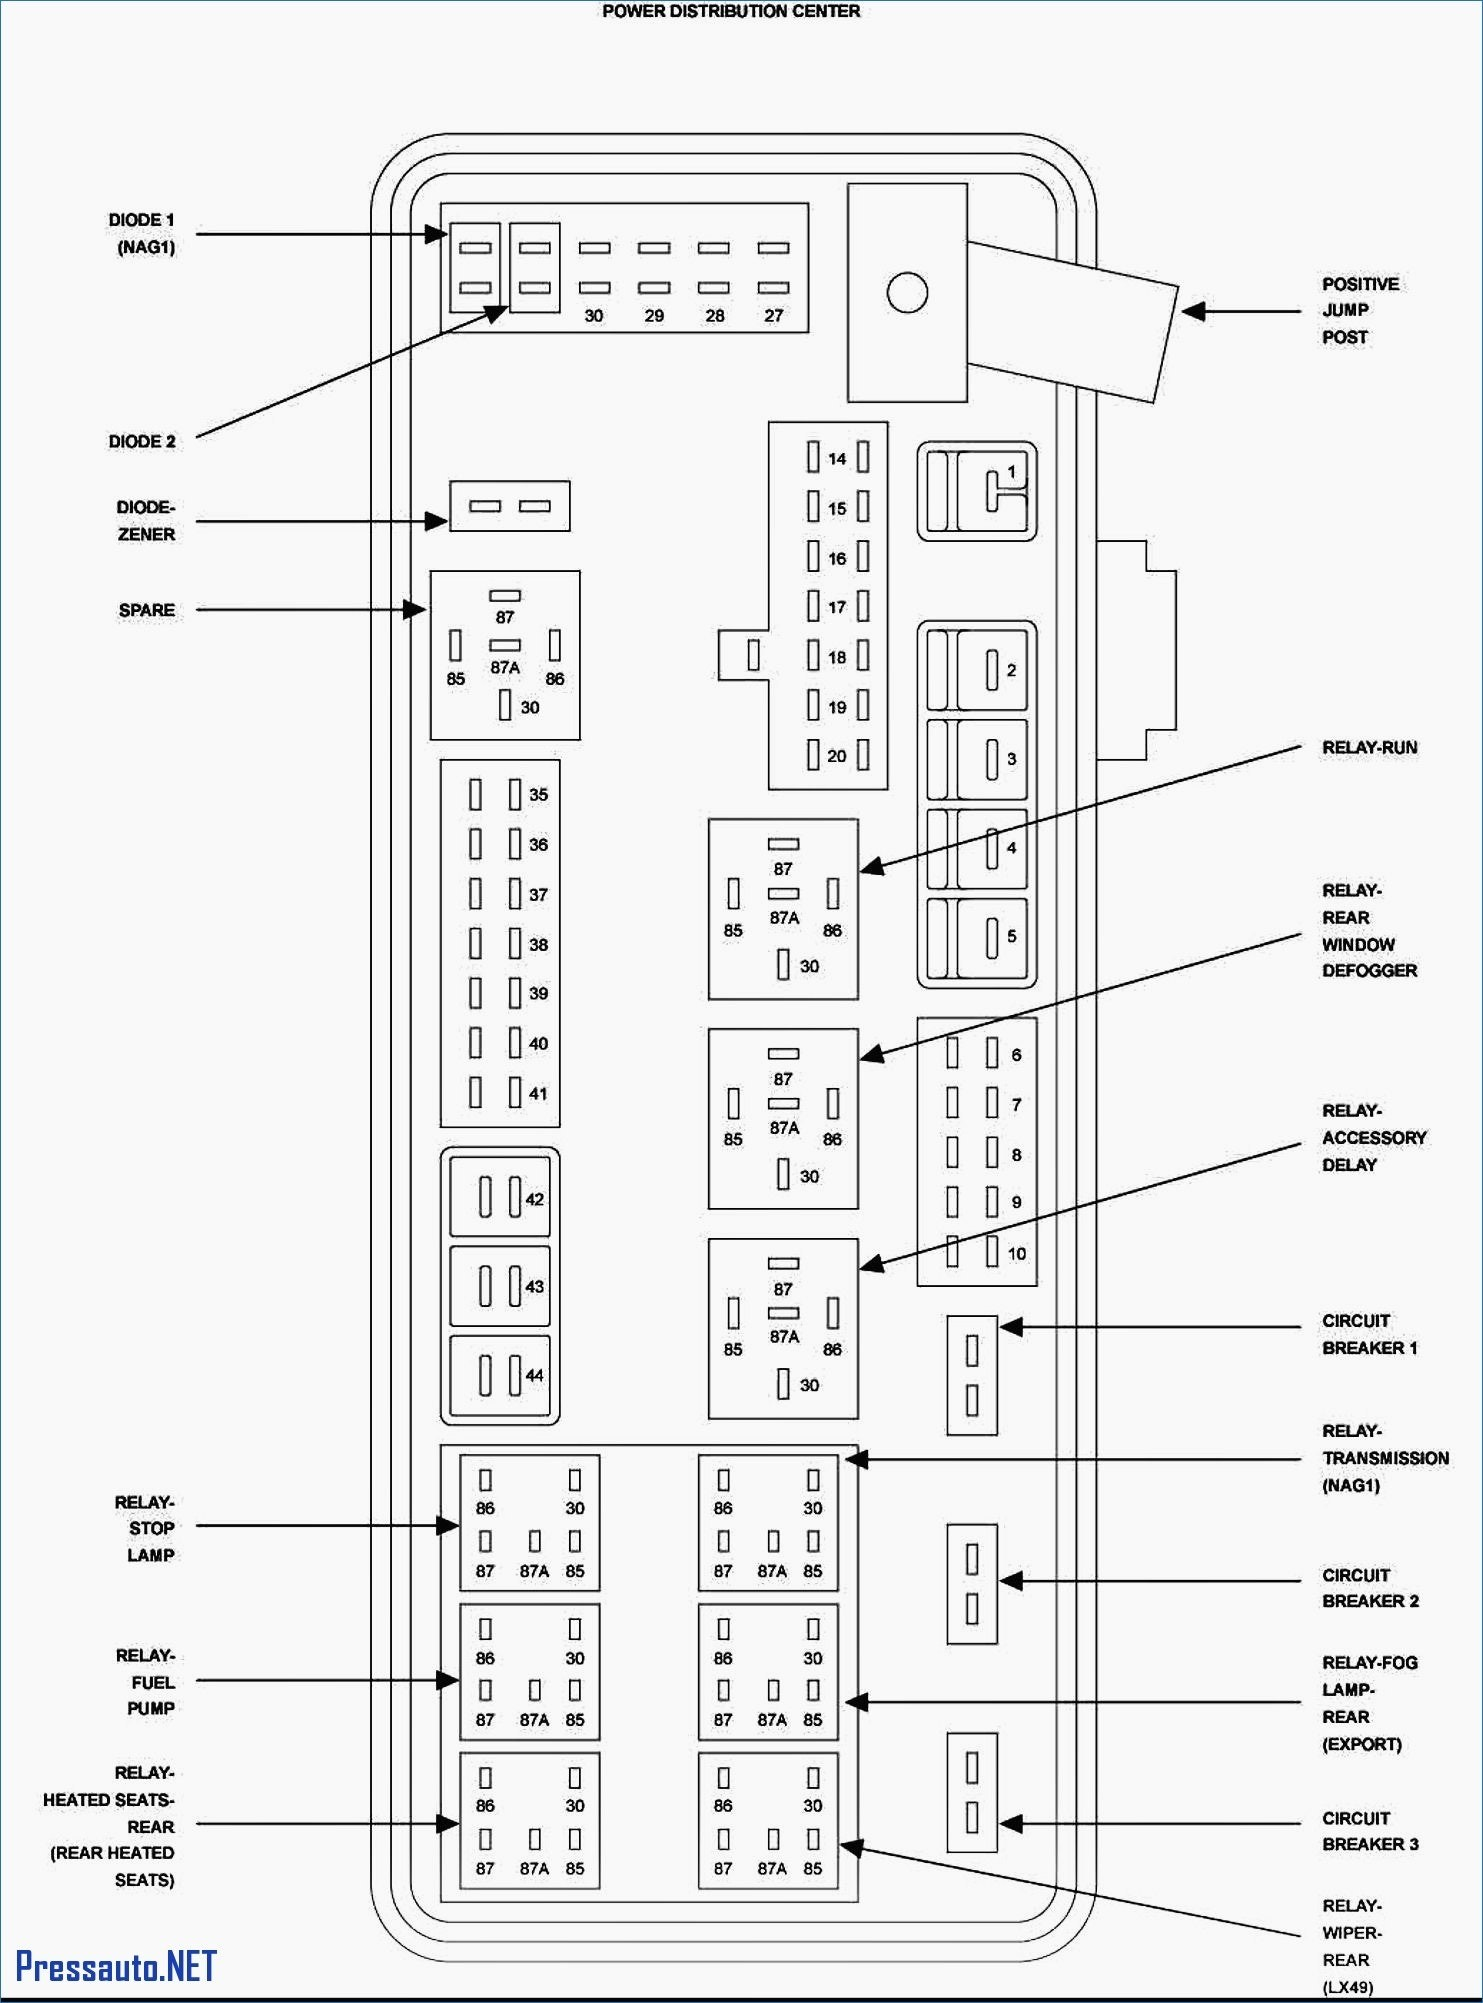 2001 Chrysler Town And Country Wiring Diagram from detoxicrecenze.com